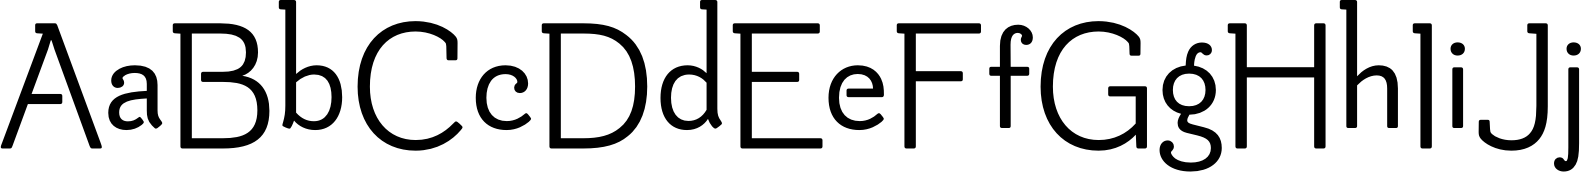 Be Creative Demibold Font